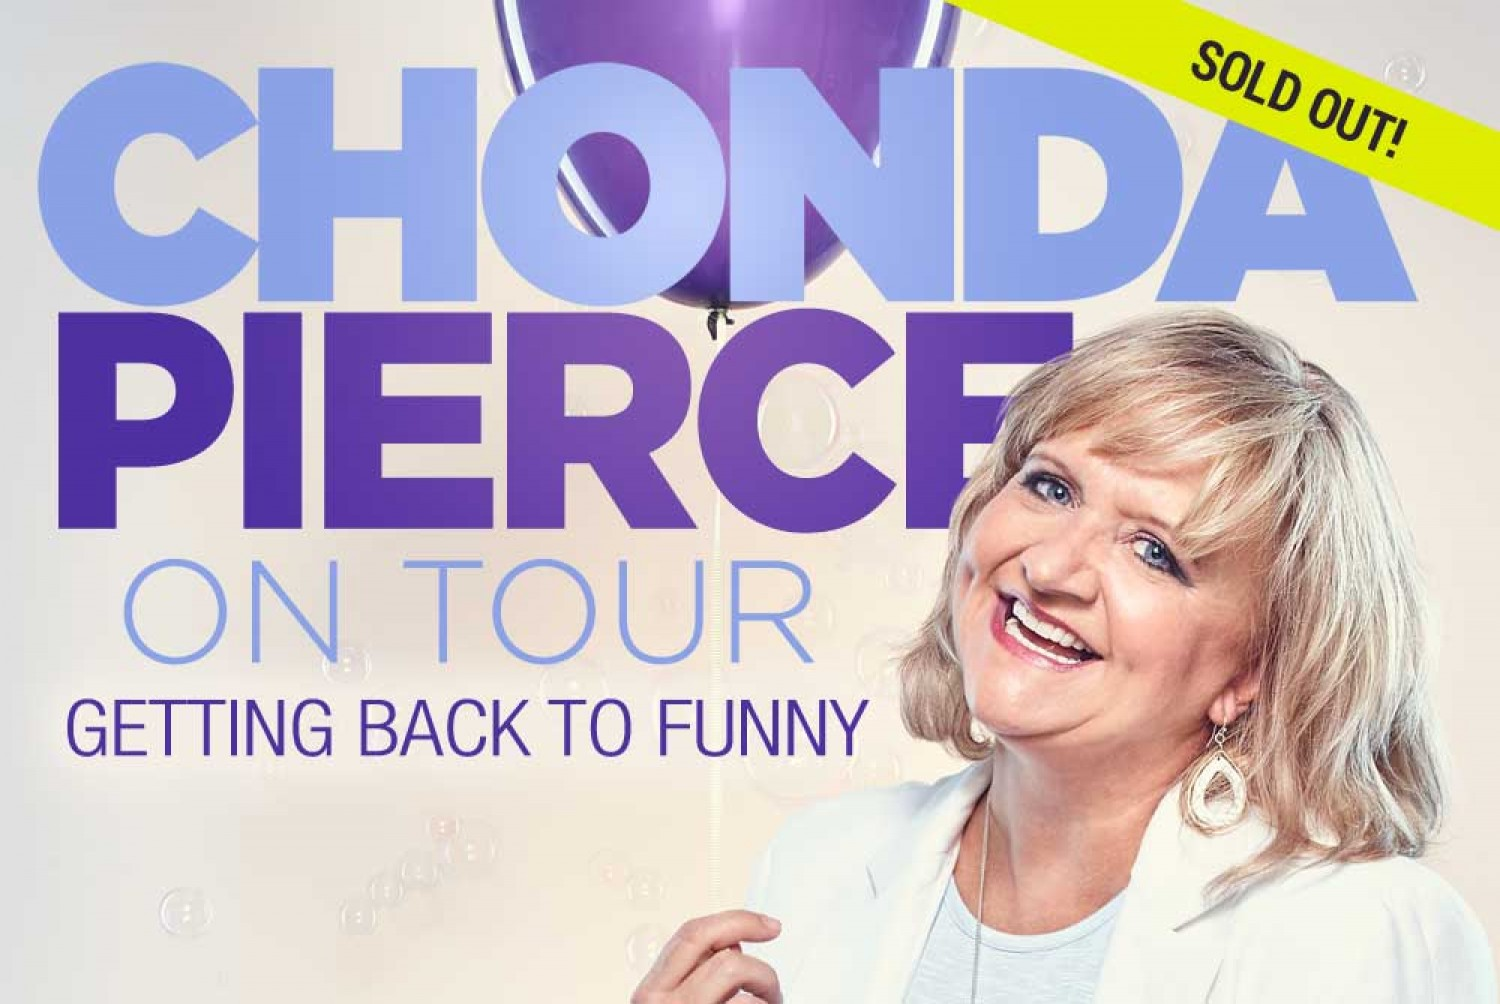 Chonda Pierce Tour Dates 2020 Chonda Pierce   Getting Back To Funny | March 2 | Special Event at